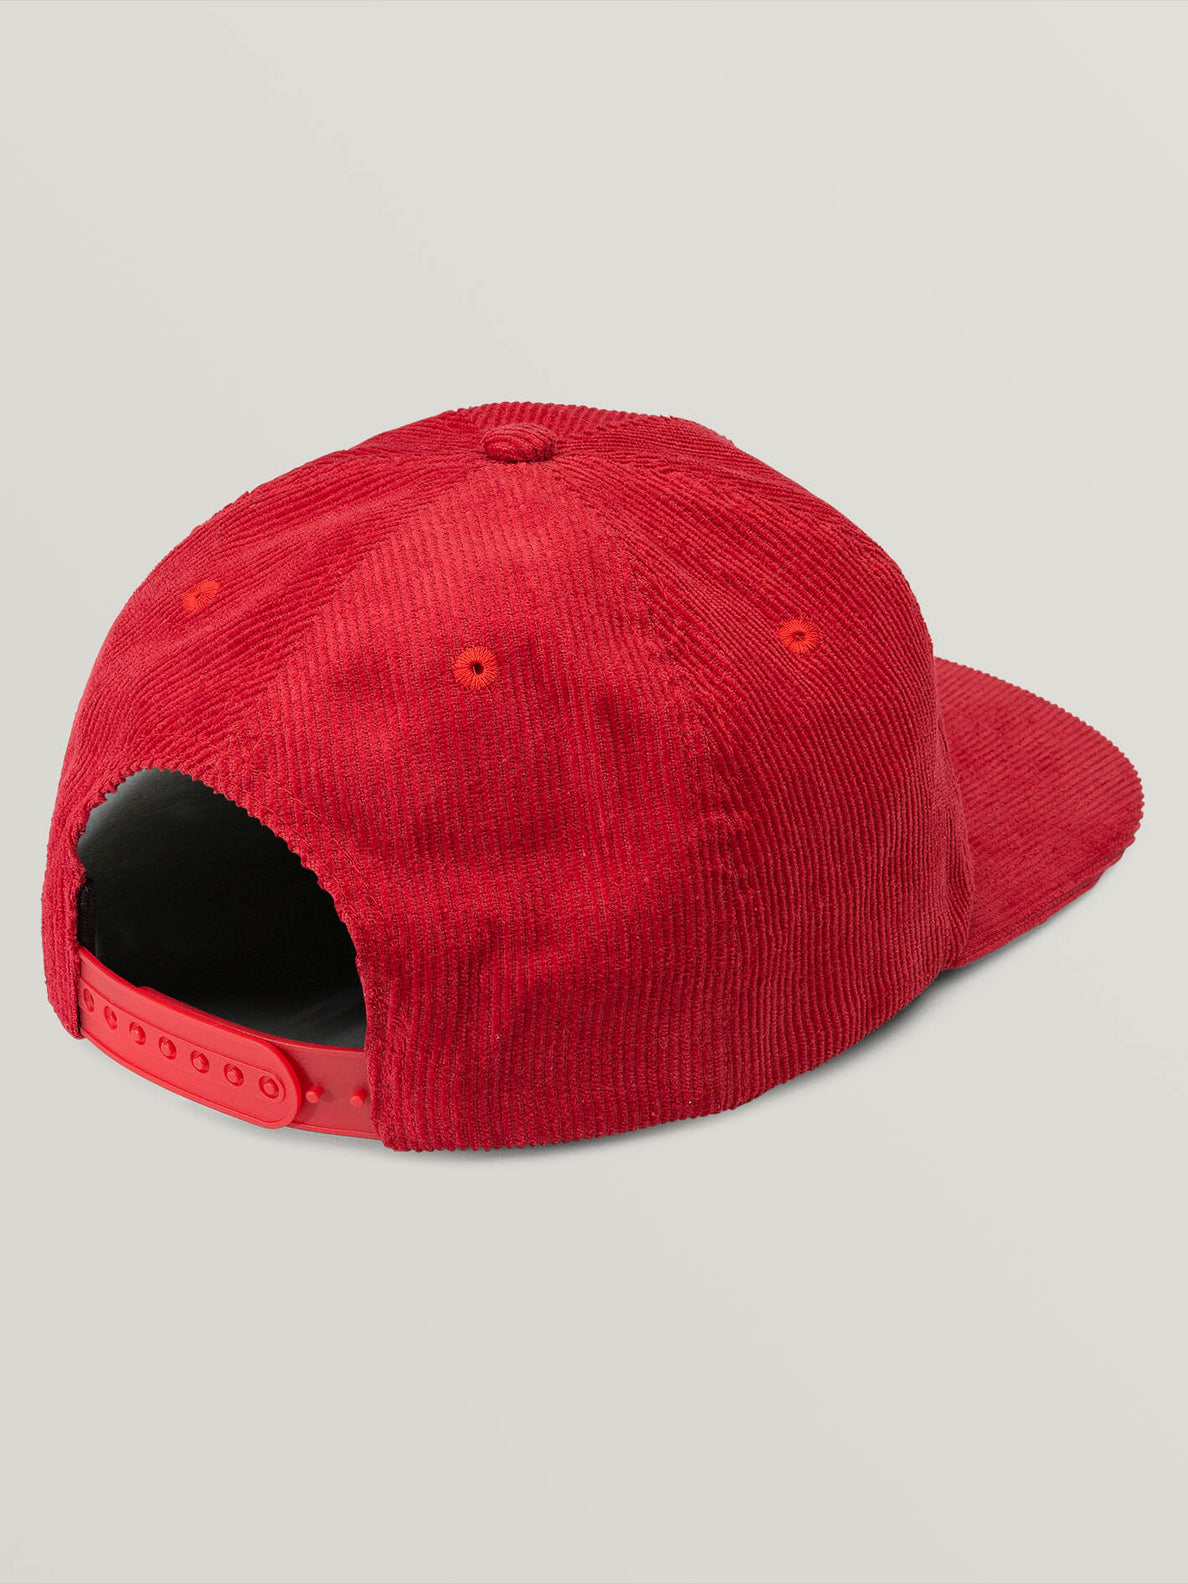 Animal Hour Hat In Red, Back View